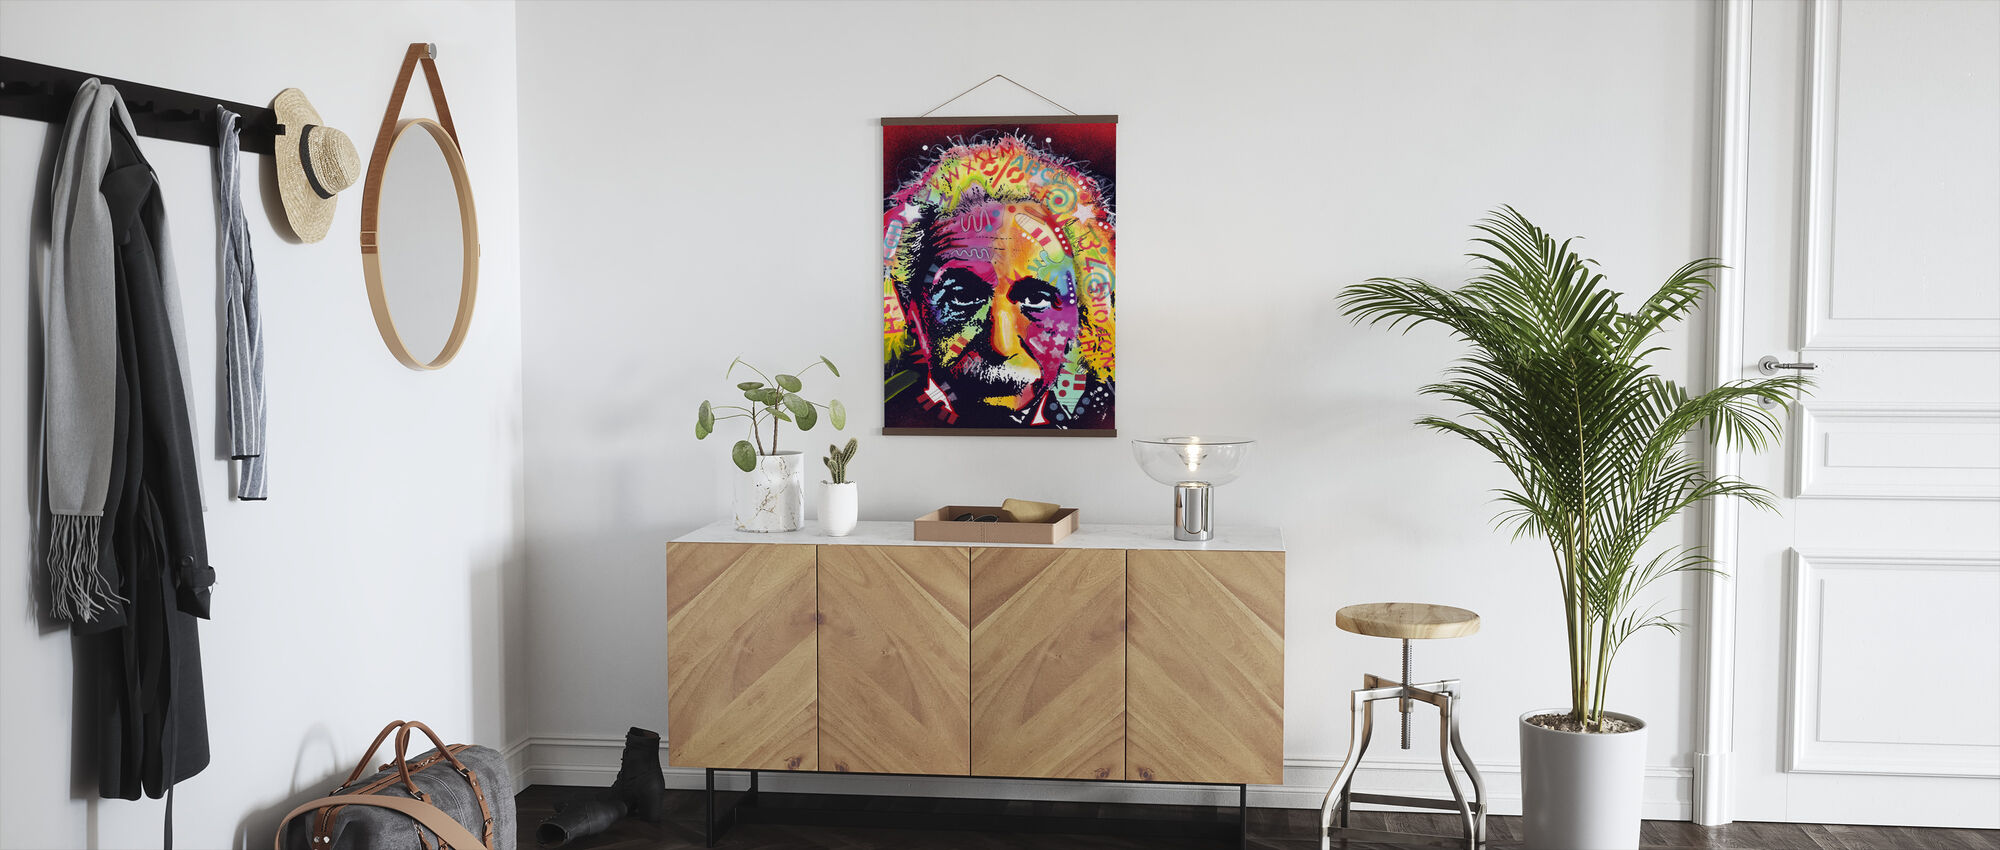 Einstein 2 - Poster - Hall